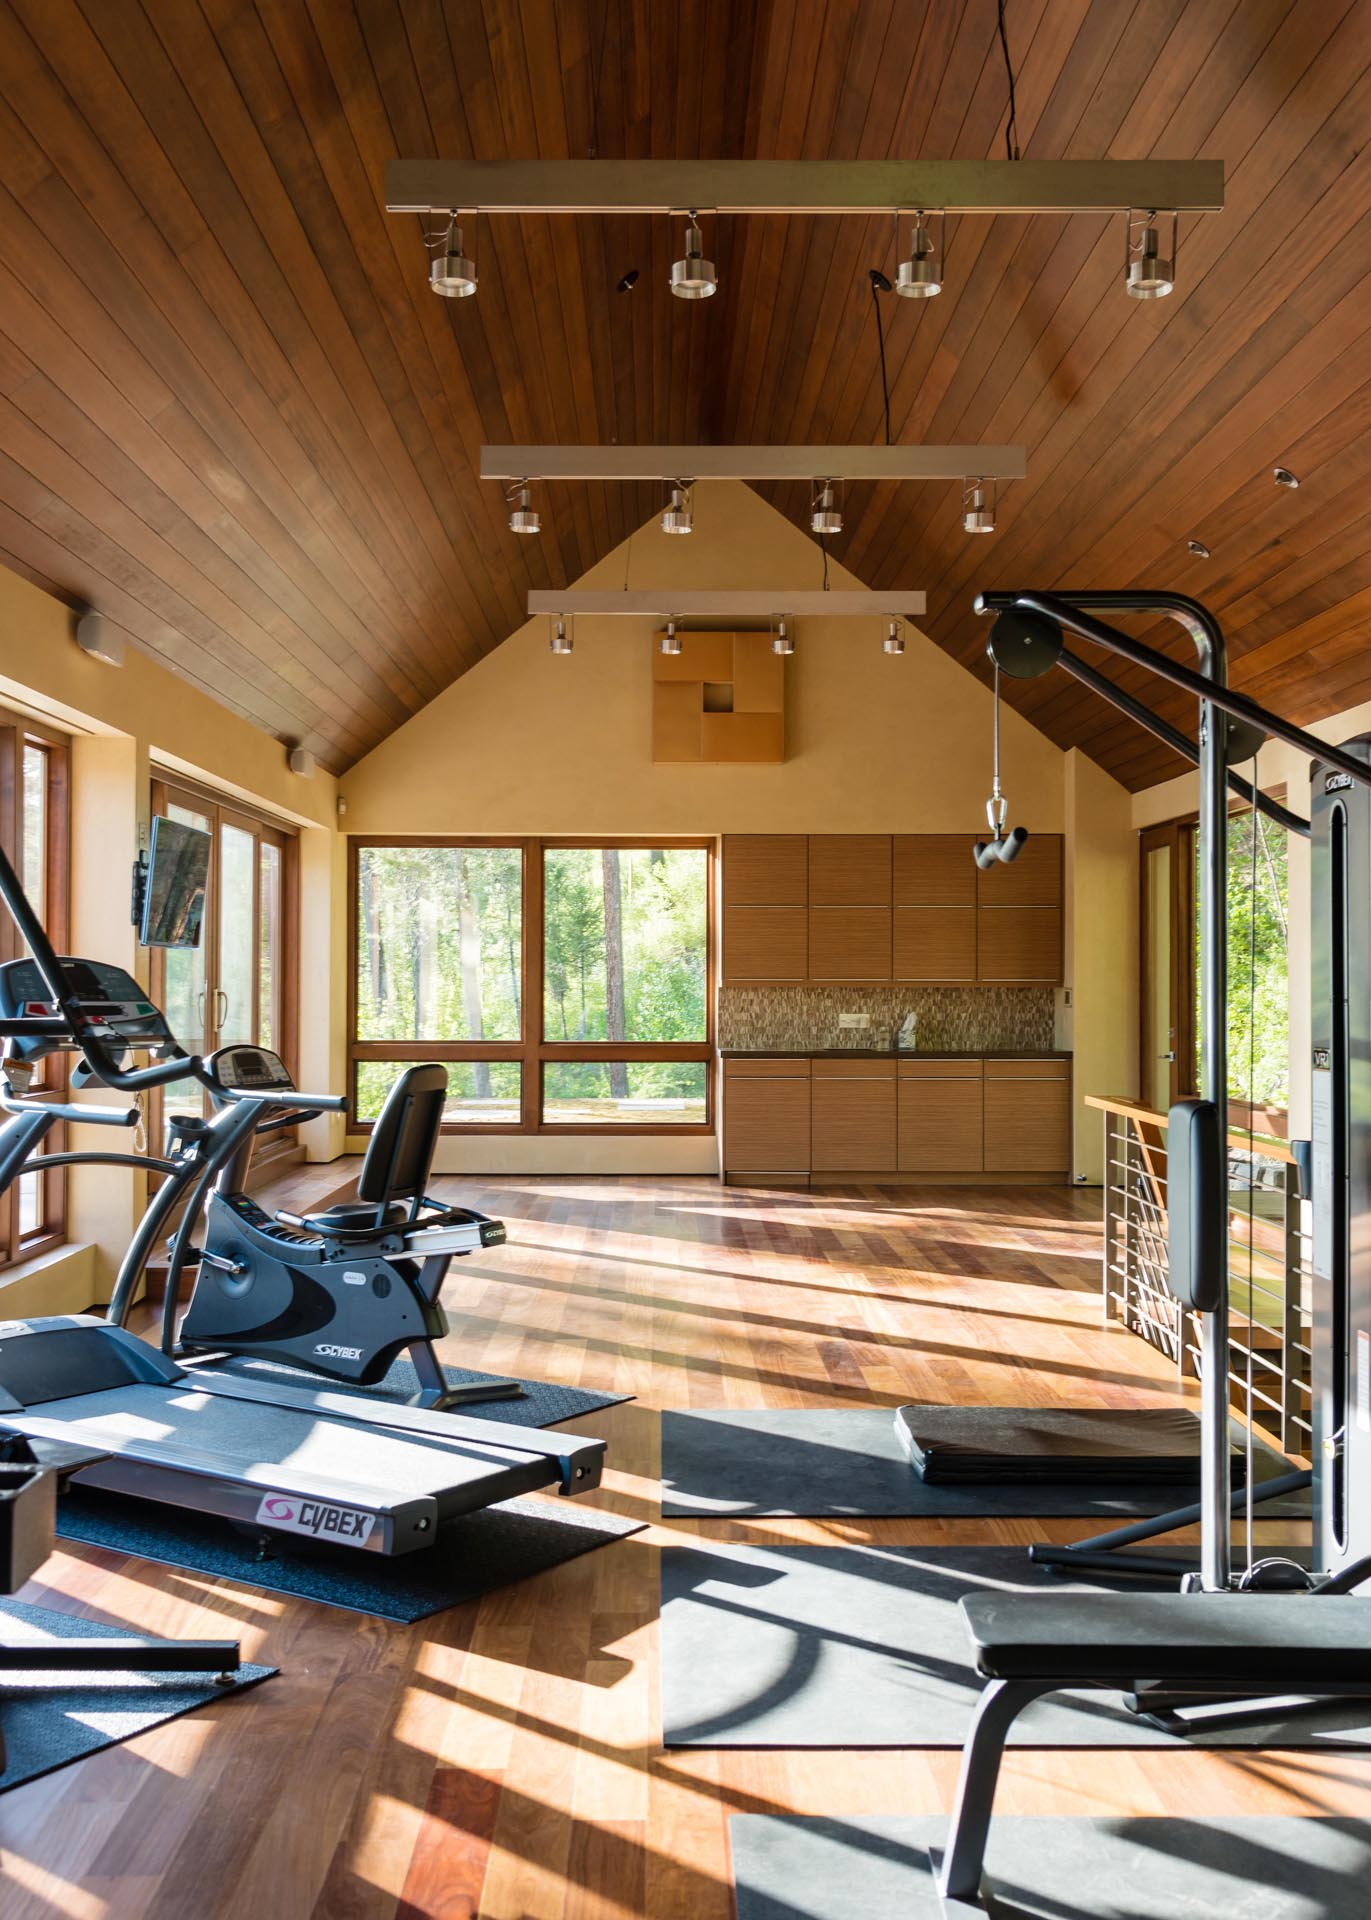 This gym showcases a wood lined ceiling that complements the flooring and the window frames. The gym also has doors that provide access to the green roof.